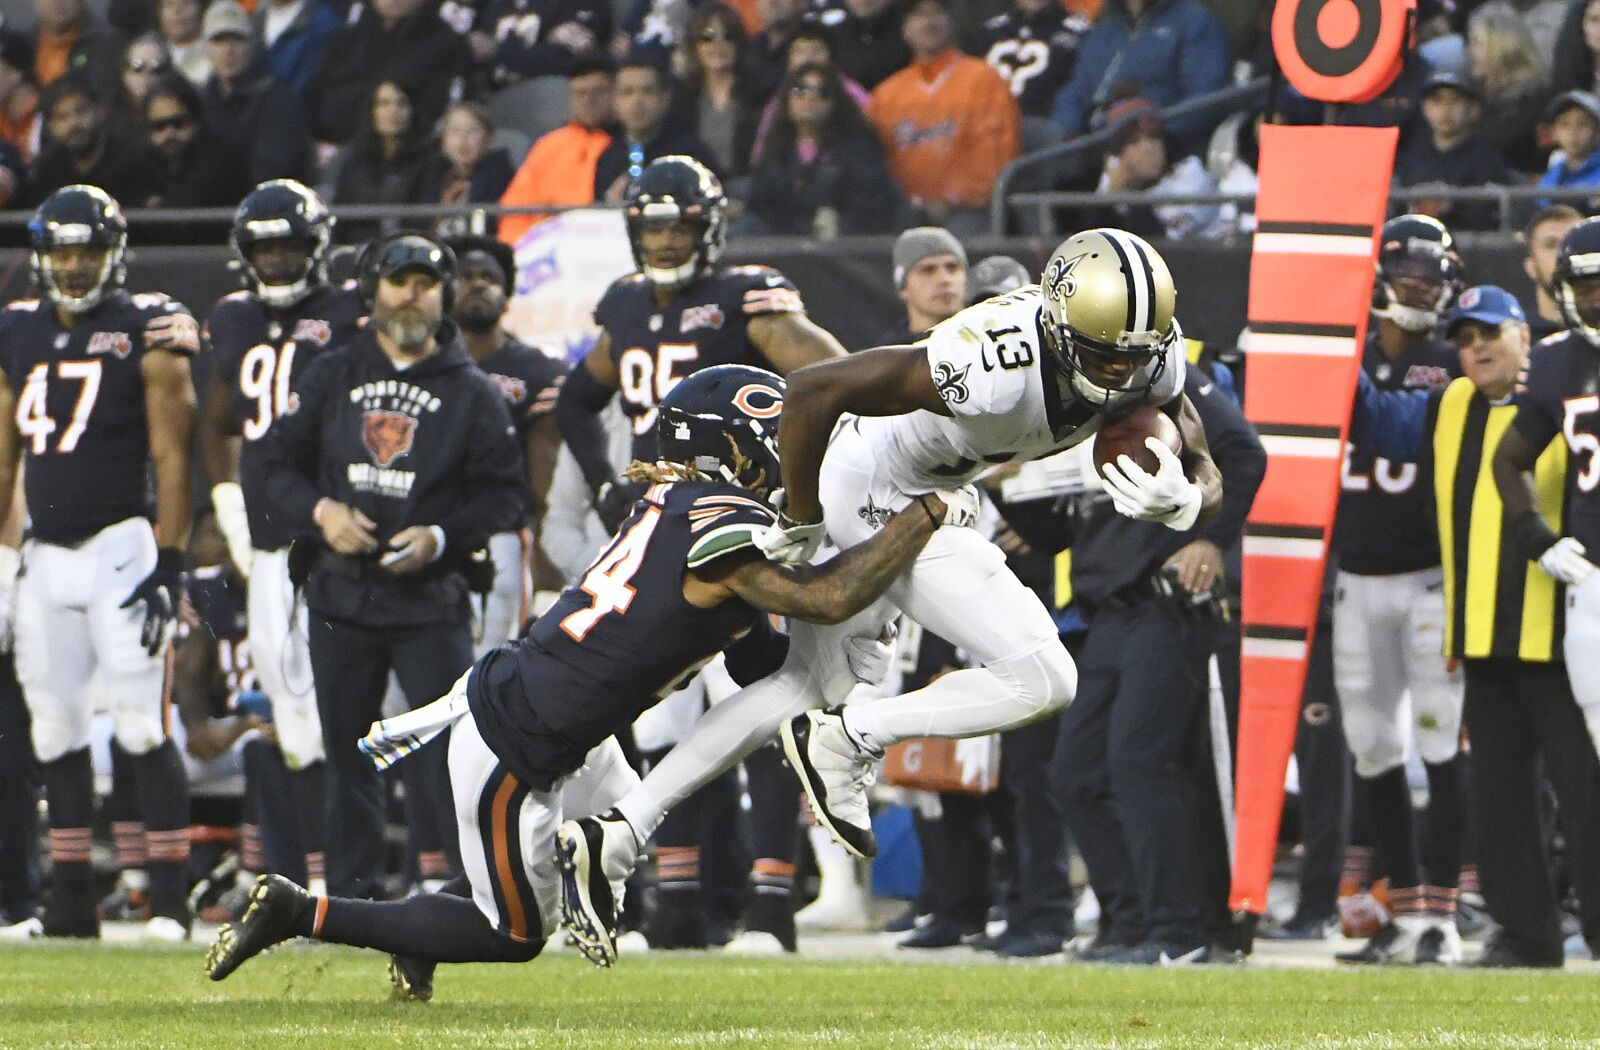 Saints keep the winning grind going outlasting the Bears on the road to go to 6-1